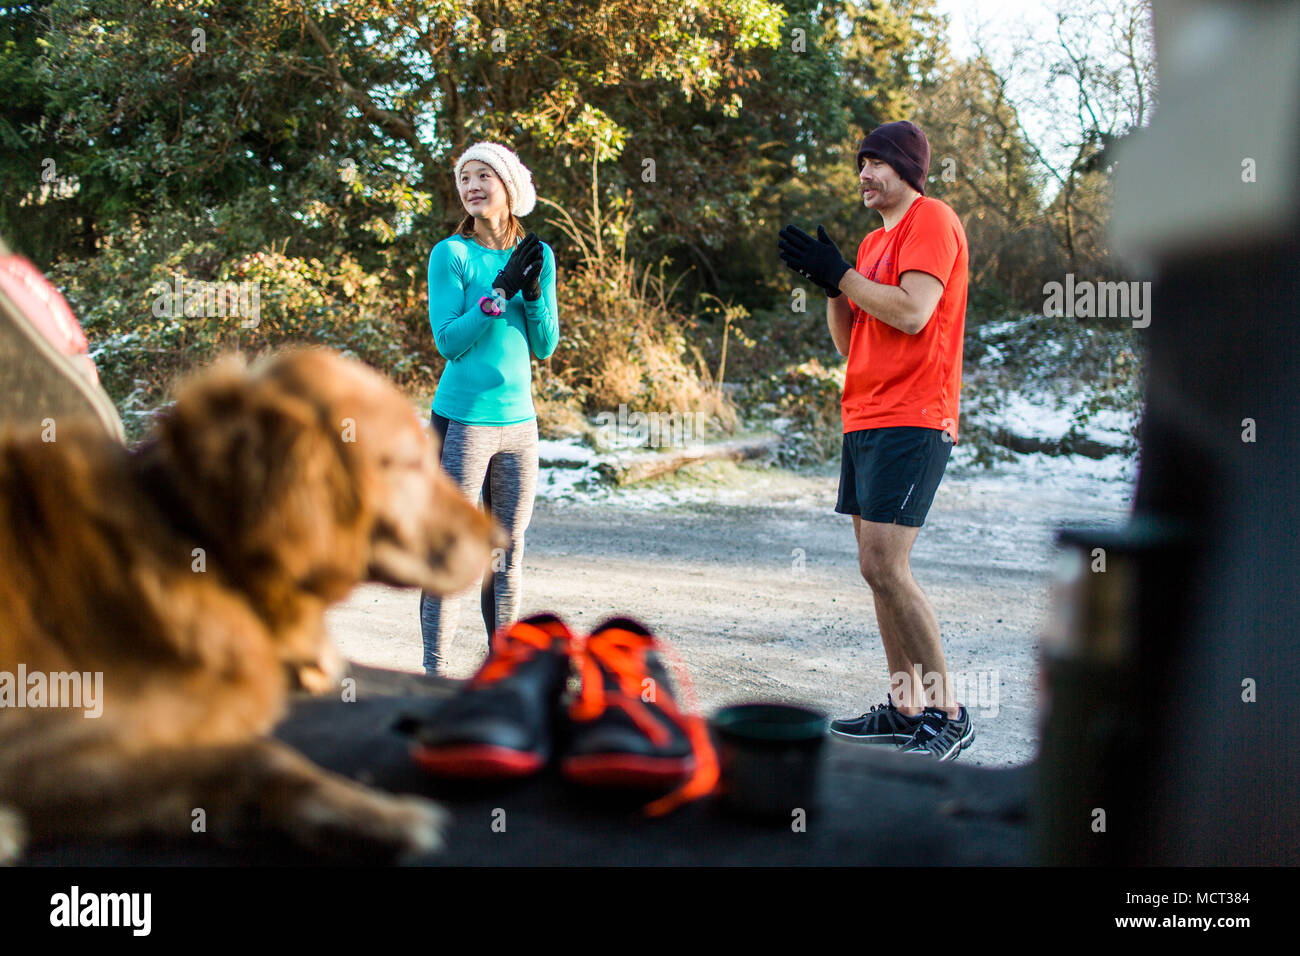 Dog sitting in car trunk and man and woman talking - Stock Image